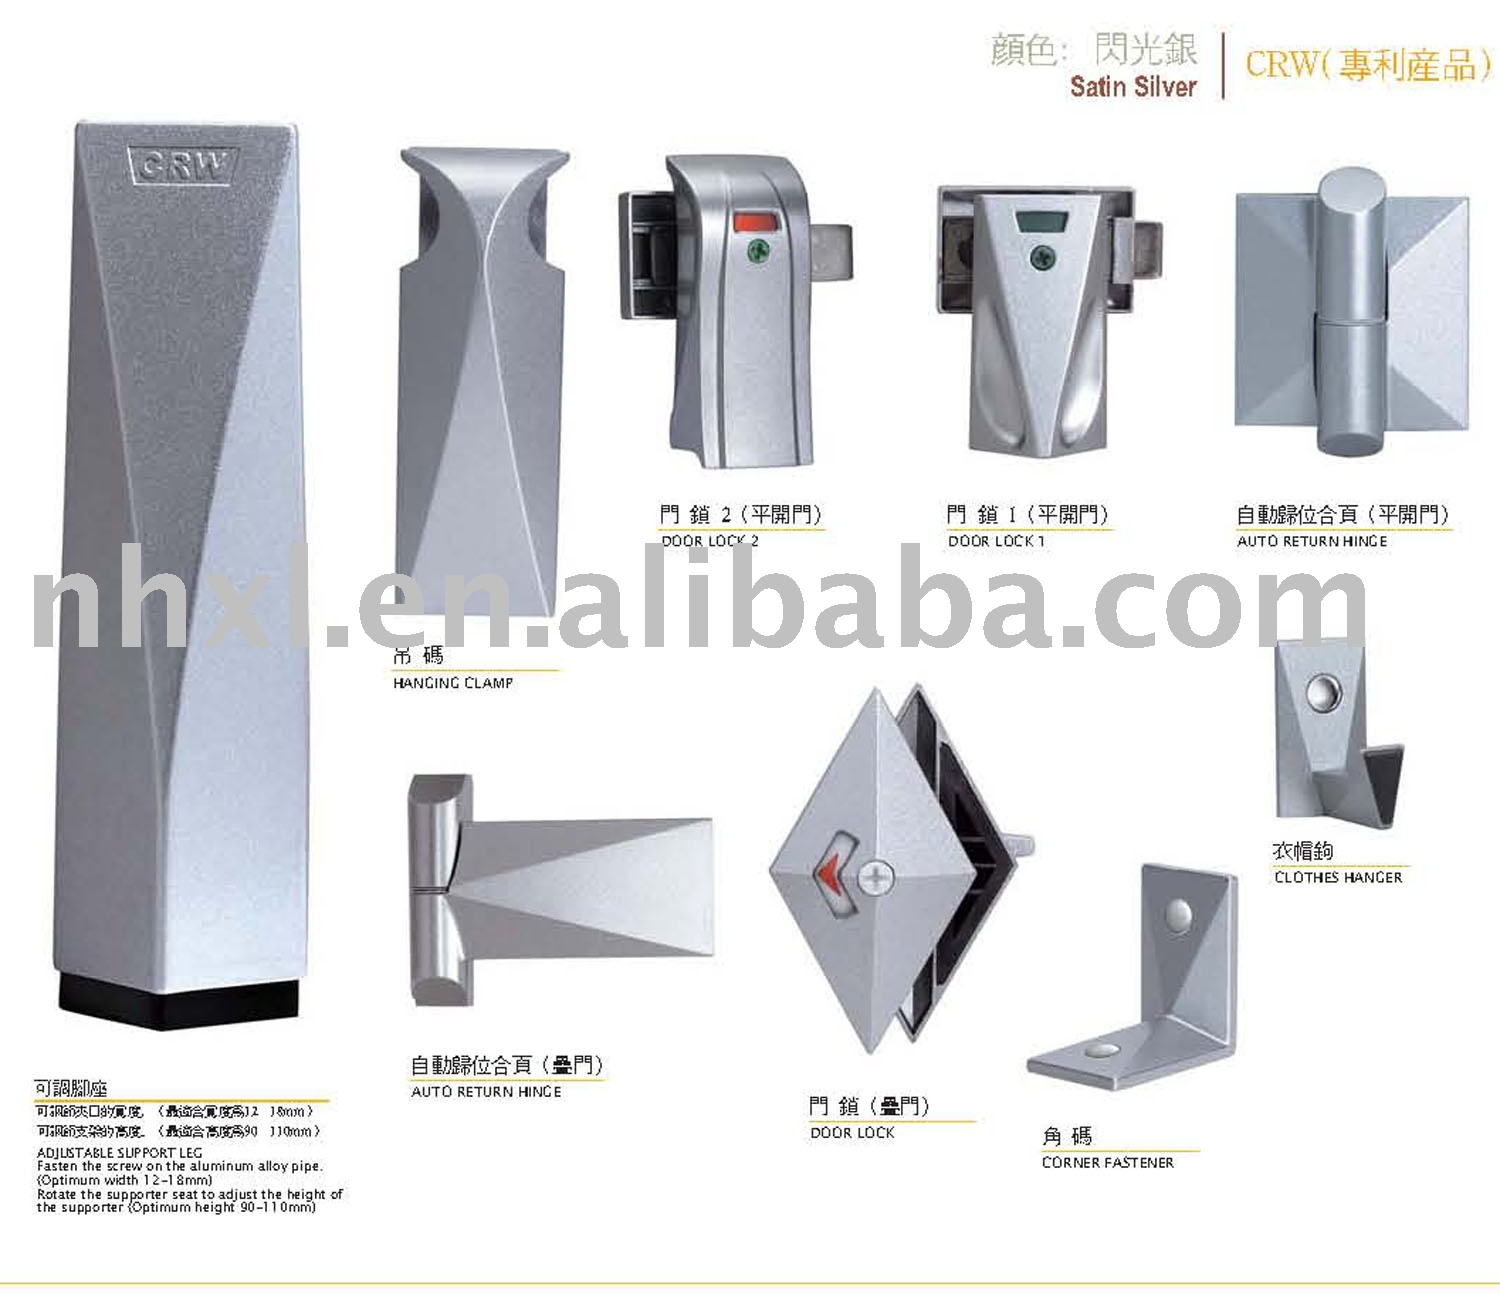 Toilet Partition Hardware, Toilet Partition Hardware Suppliers And  Manufacturers At Alibaba.com